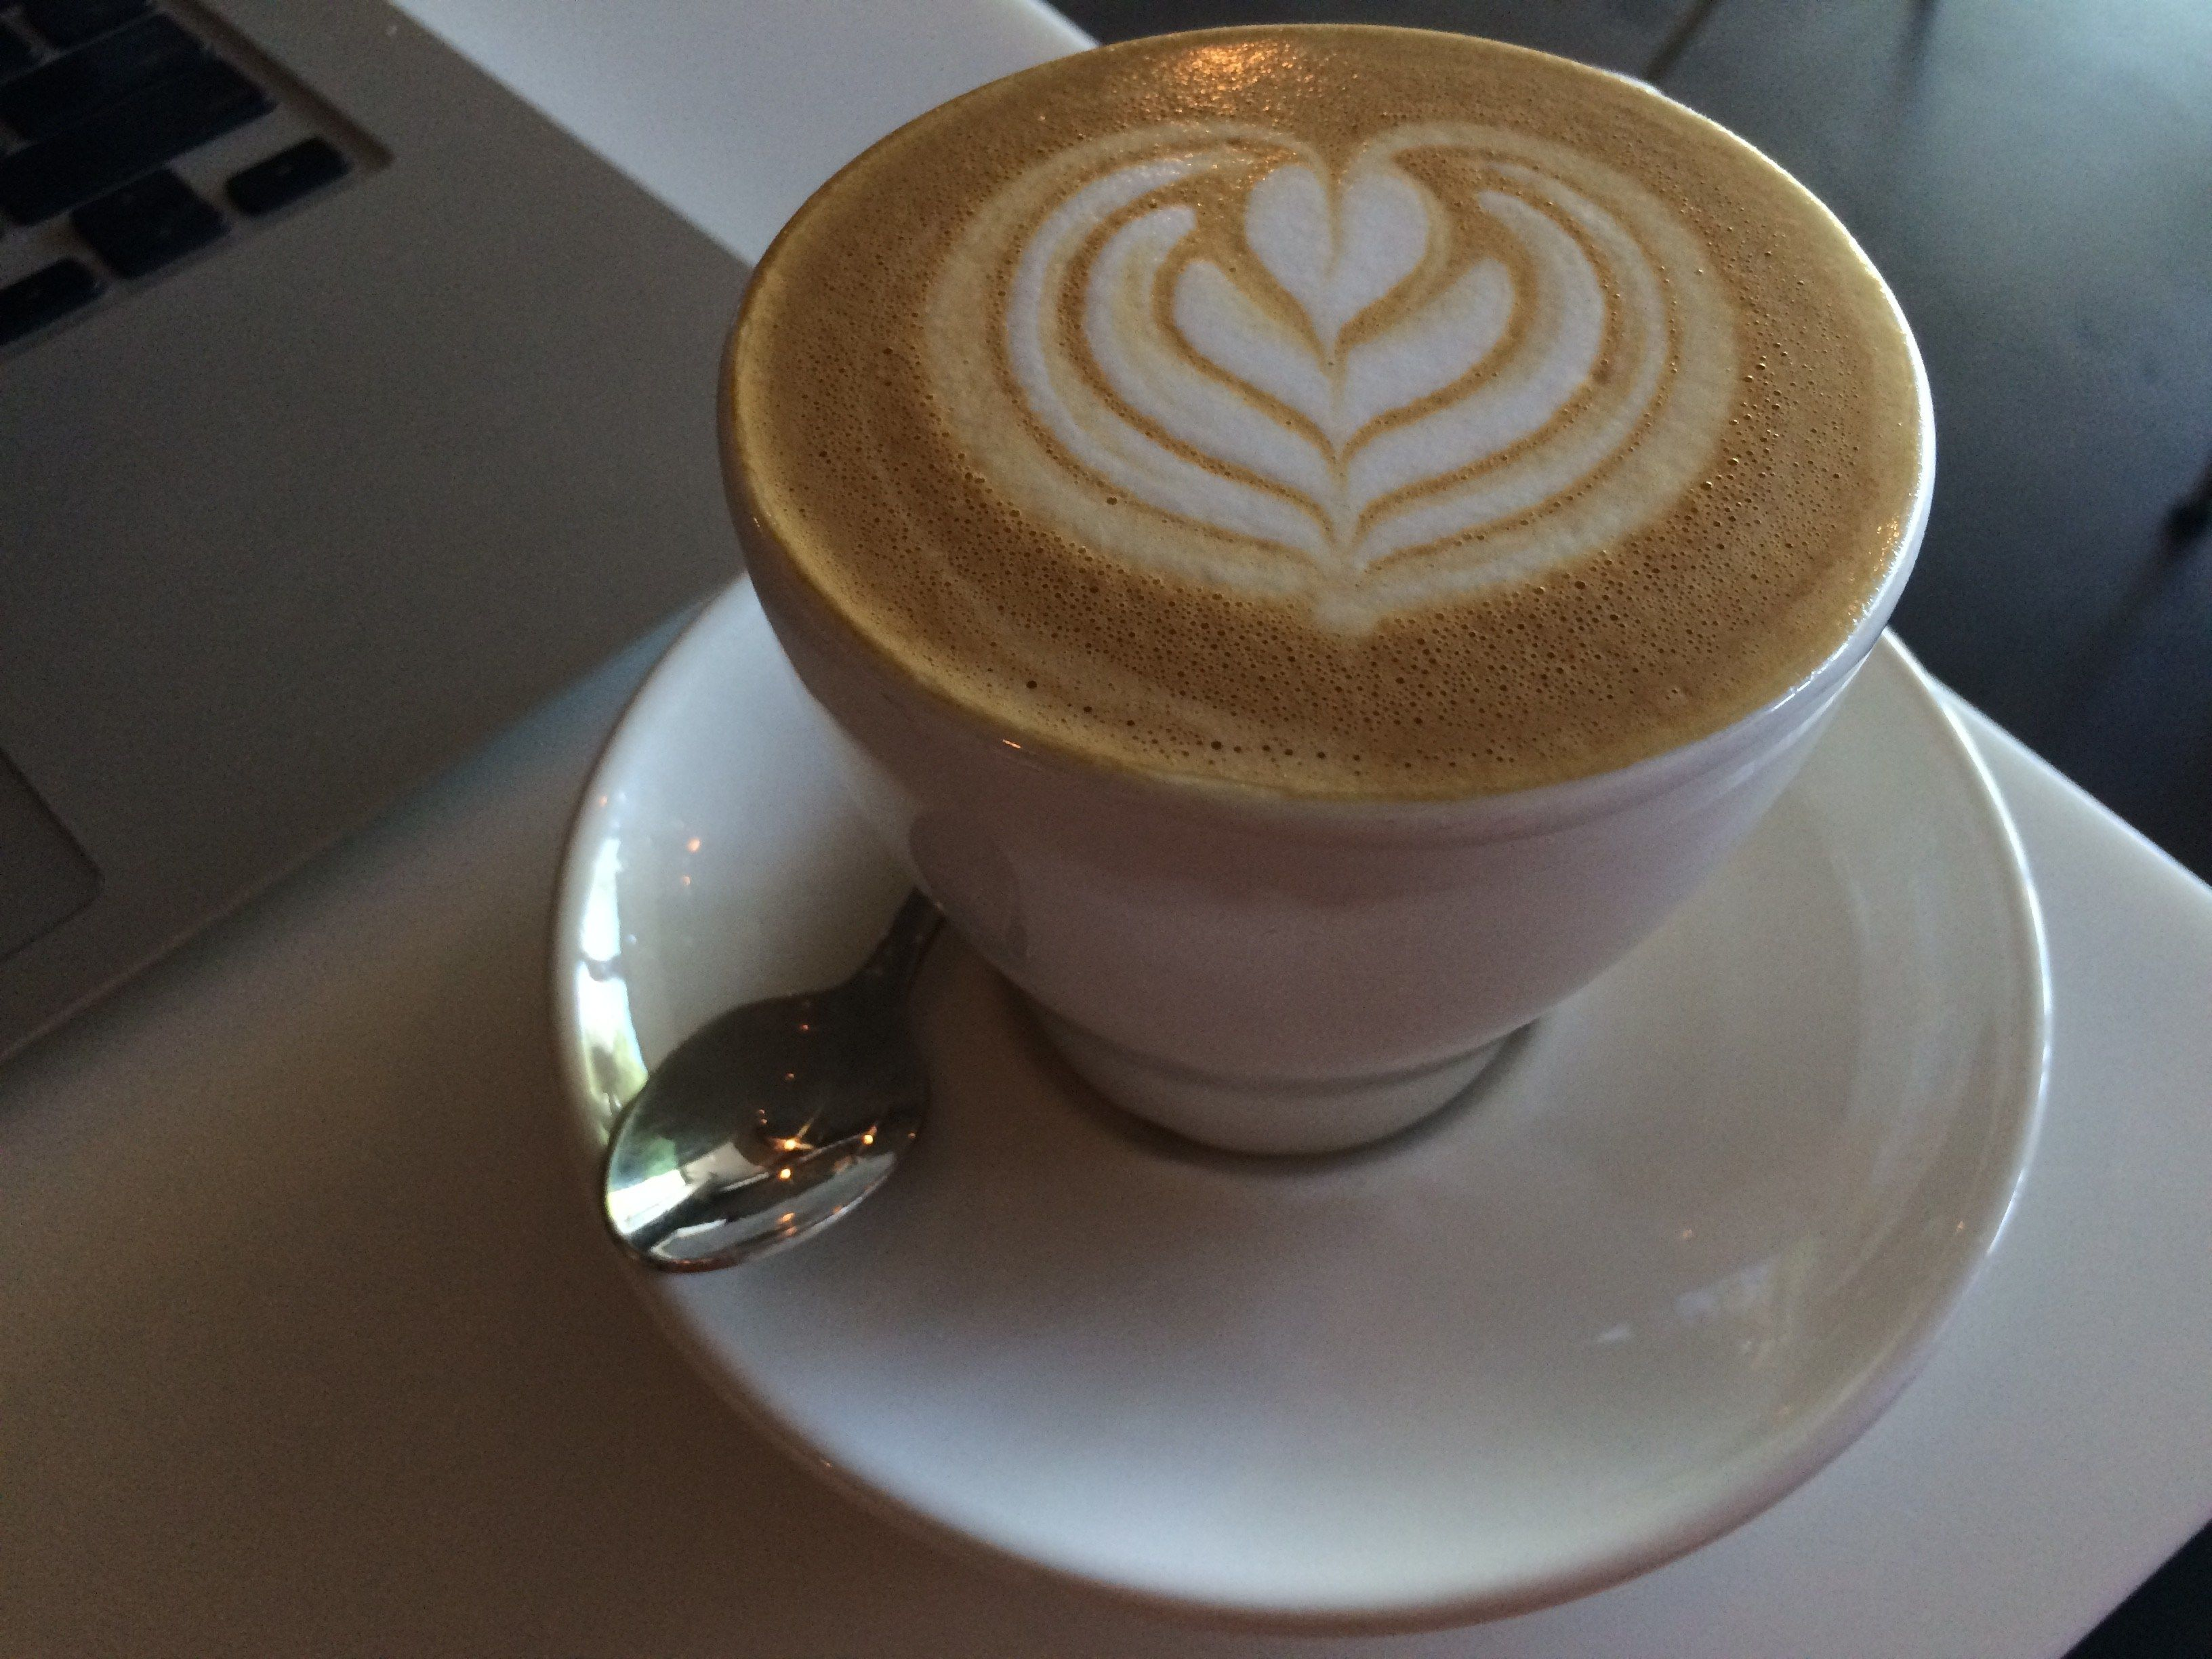 The 16 Best Coffeehouses in Metro Phoenix The Valley is